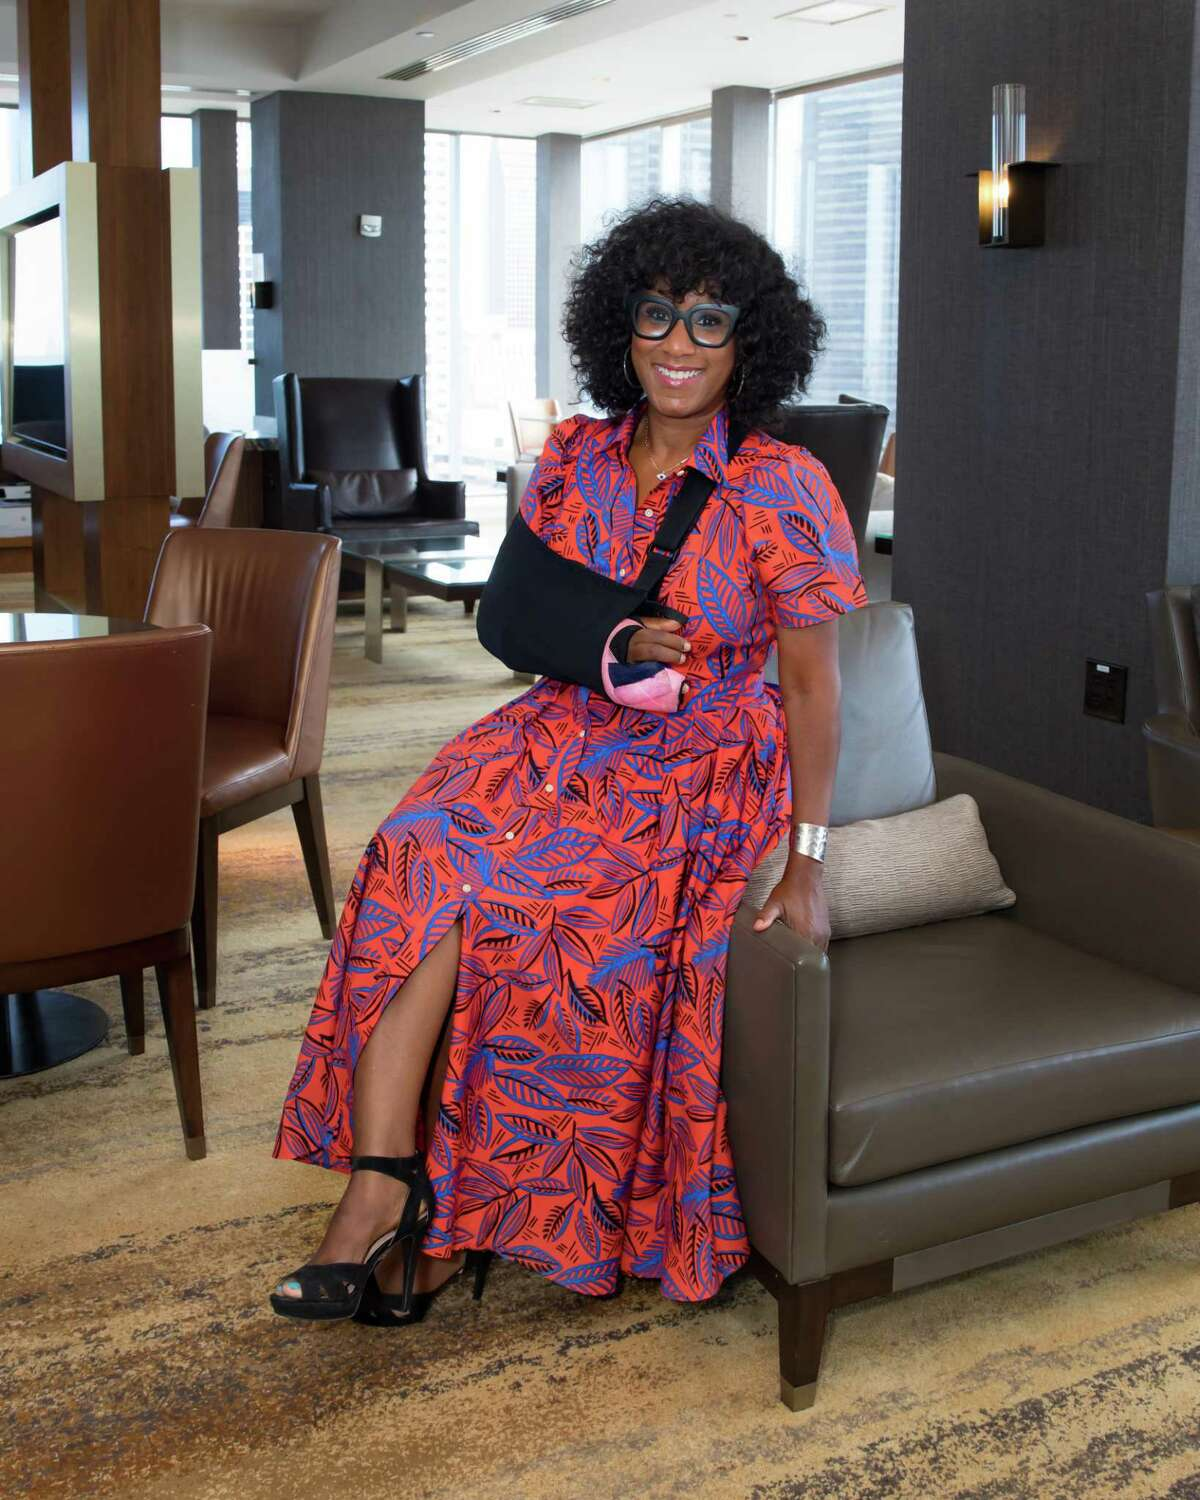 Houston Chronicle lifestyle columnist Joy Sewing is a 2022 Woman of Distinction